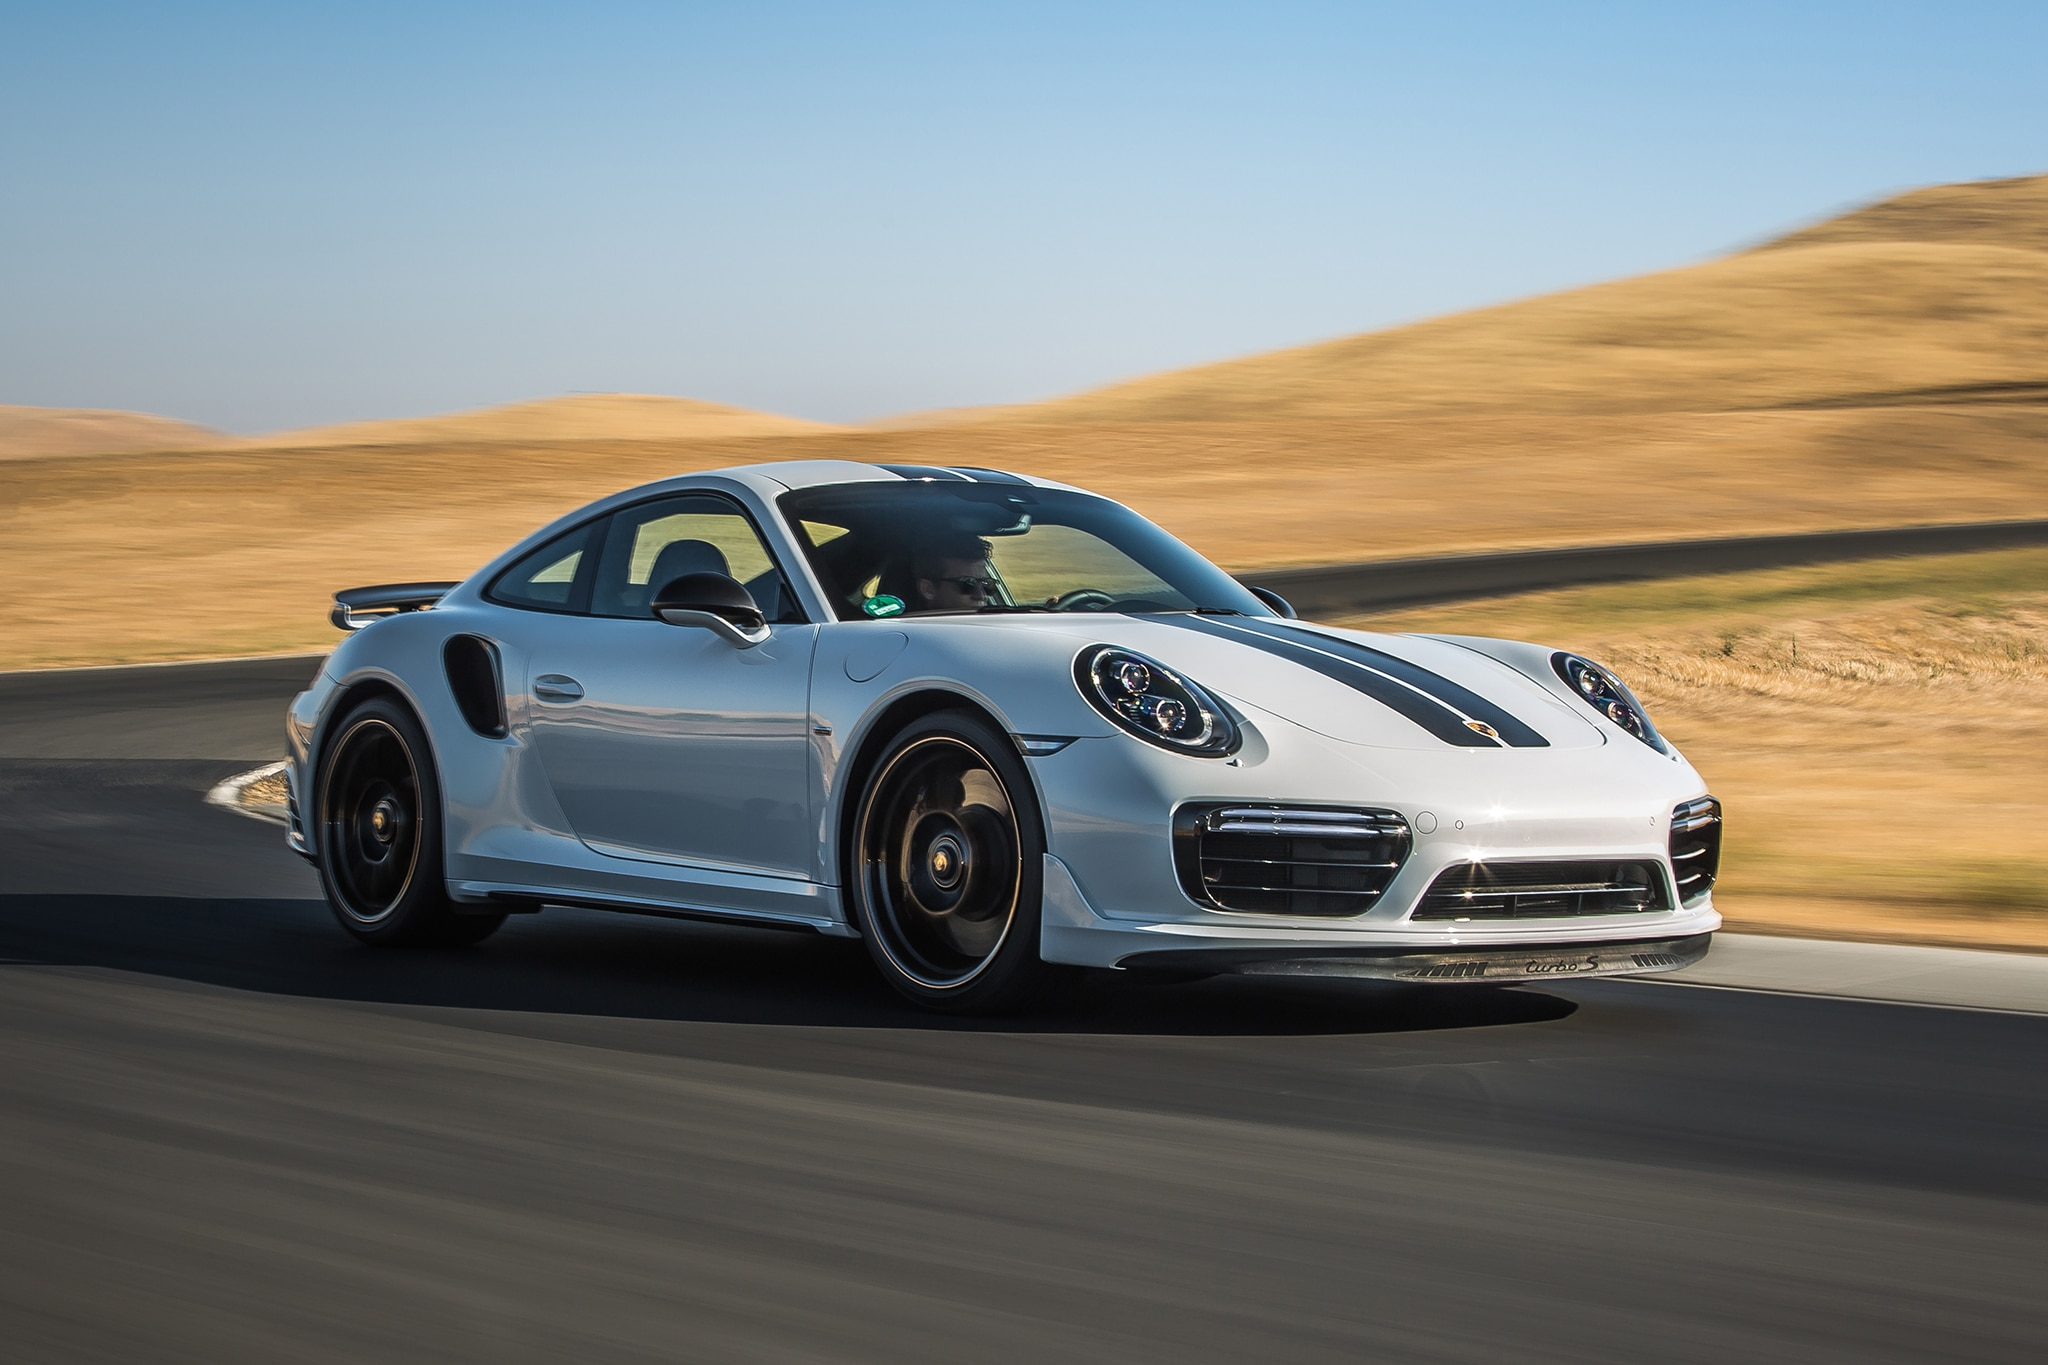 2018 Porsche 911 Turbo S Exclusive Front Three Quarter In Motion 09